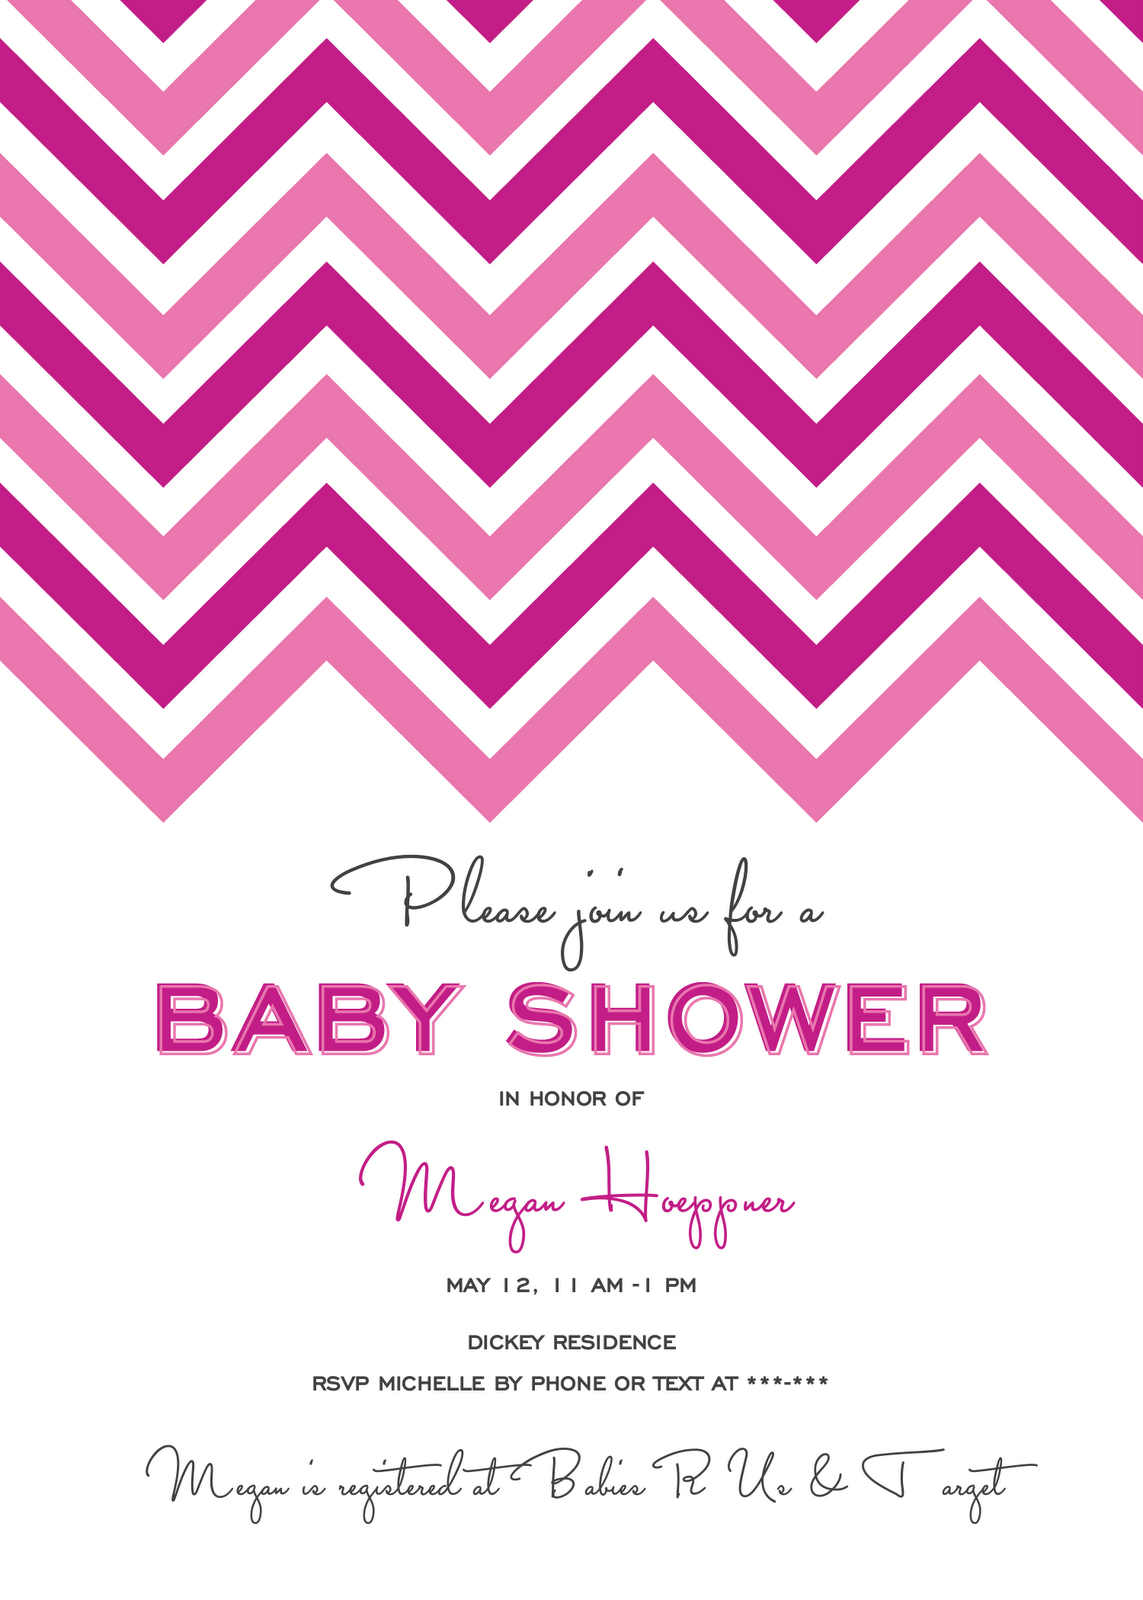 PK's Parlor: Tickled Pink Baby Shower